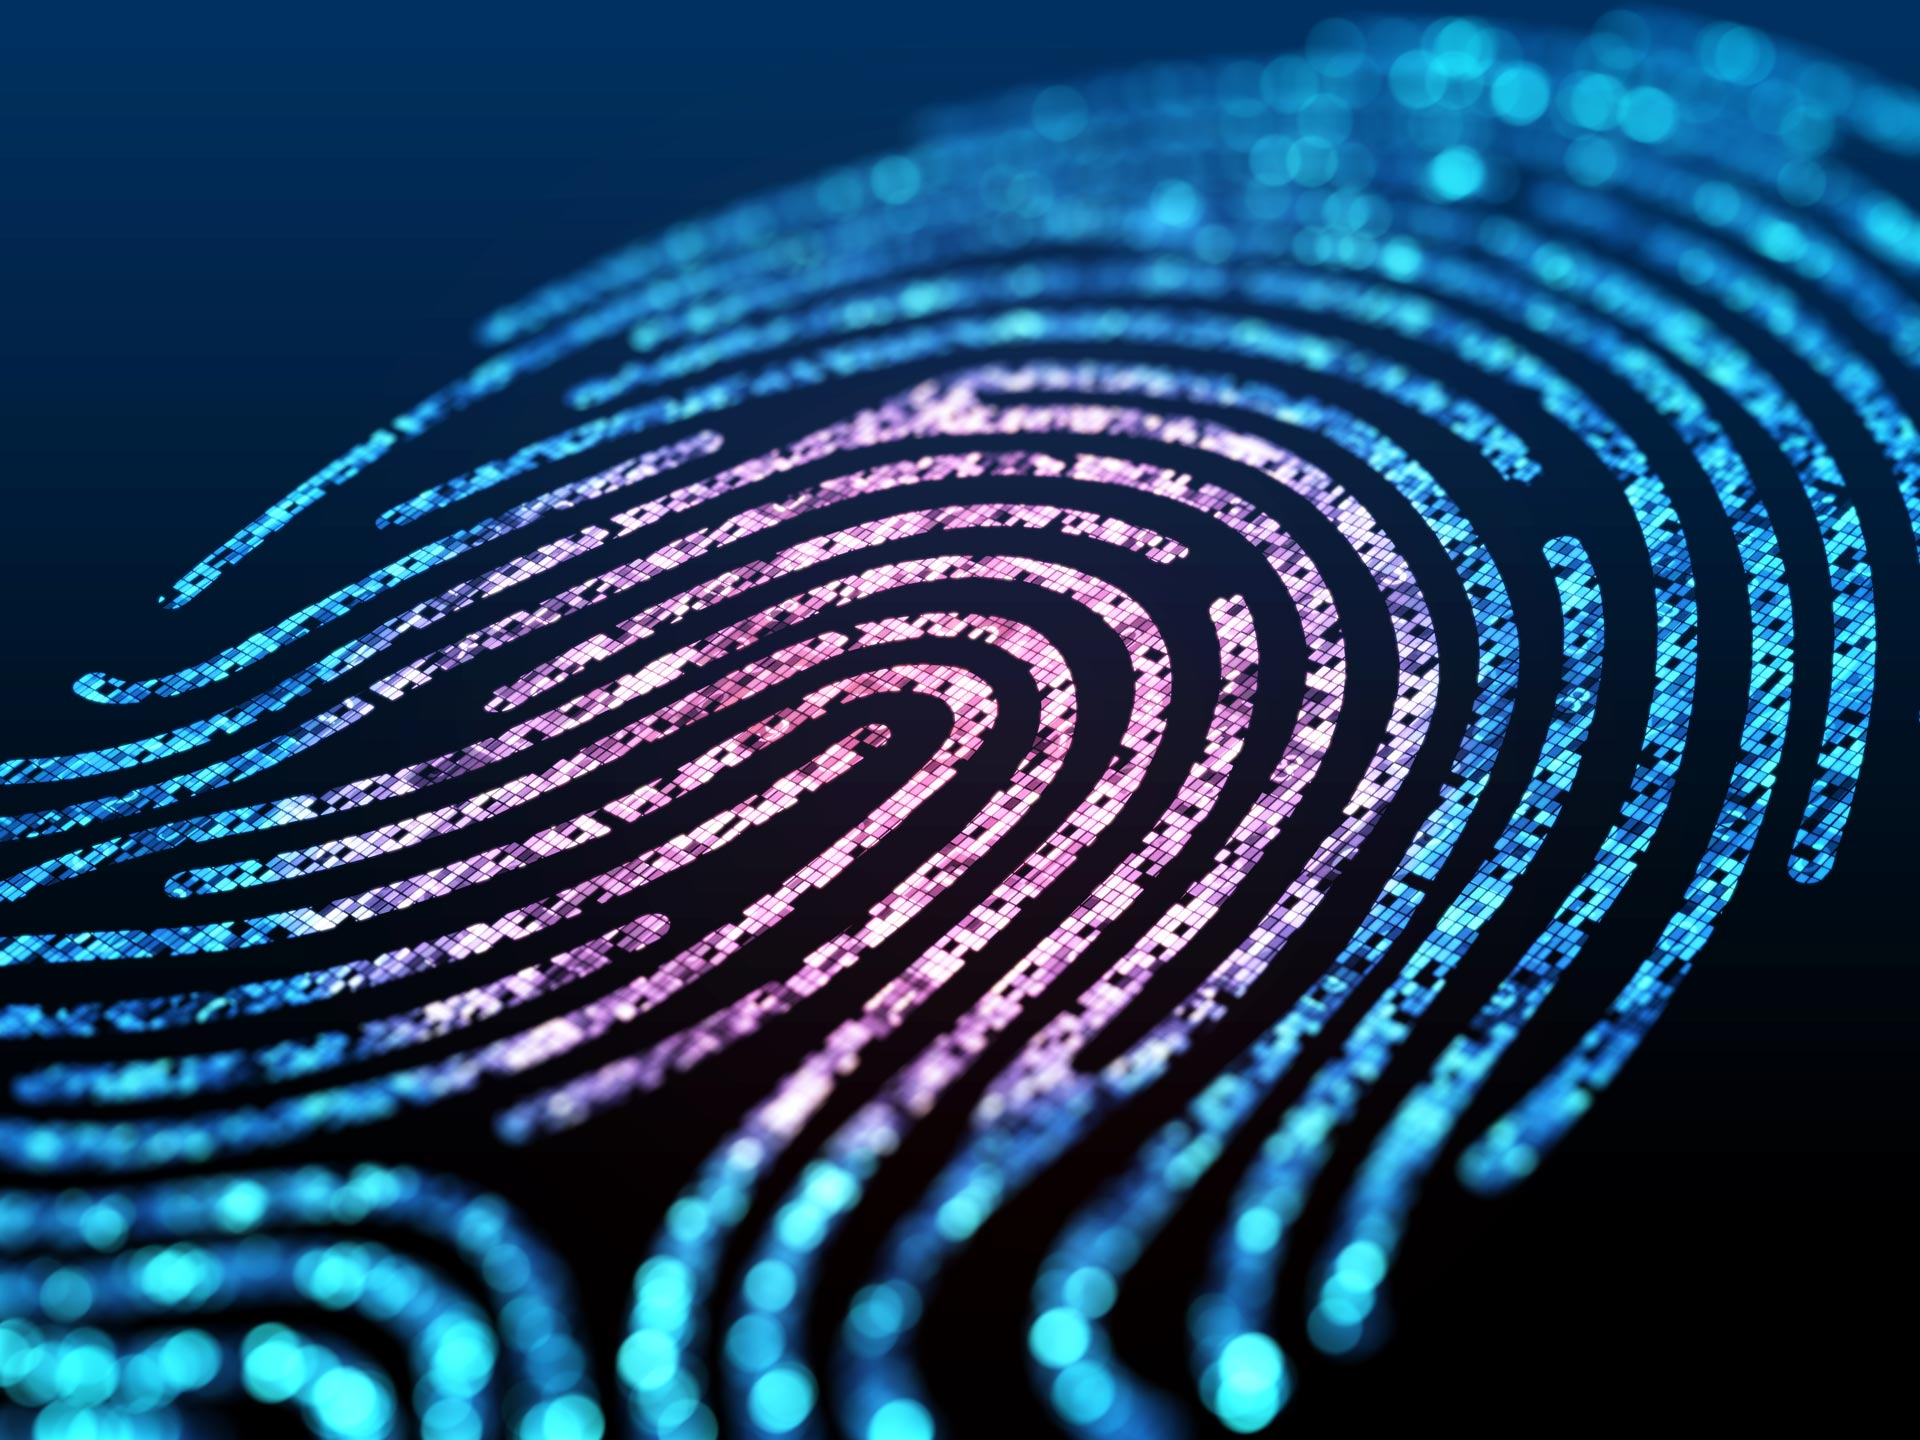 Smile and wave: The global race to biometric adoption